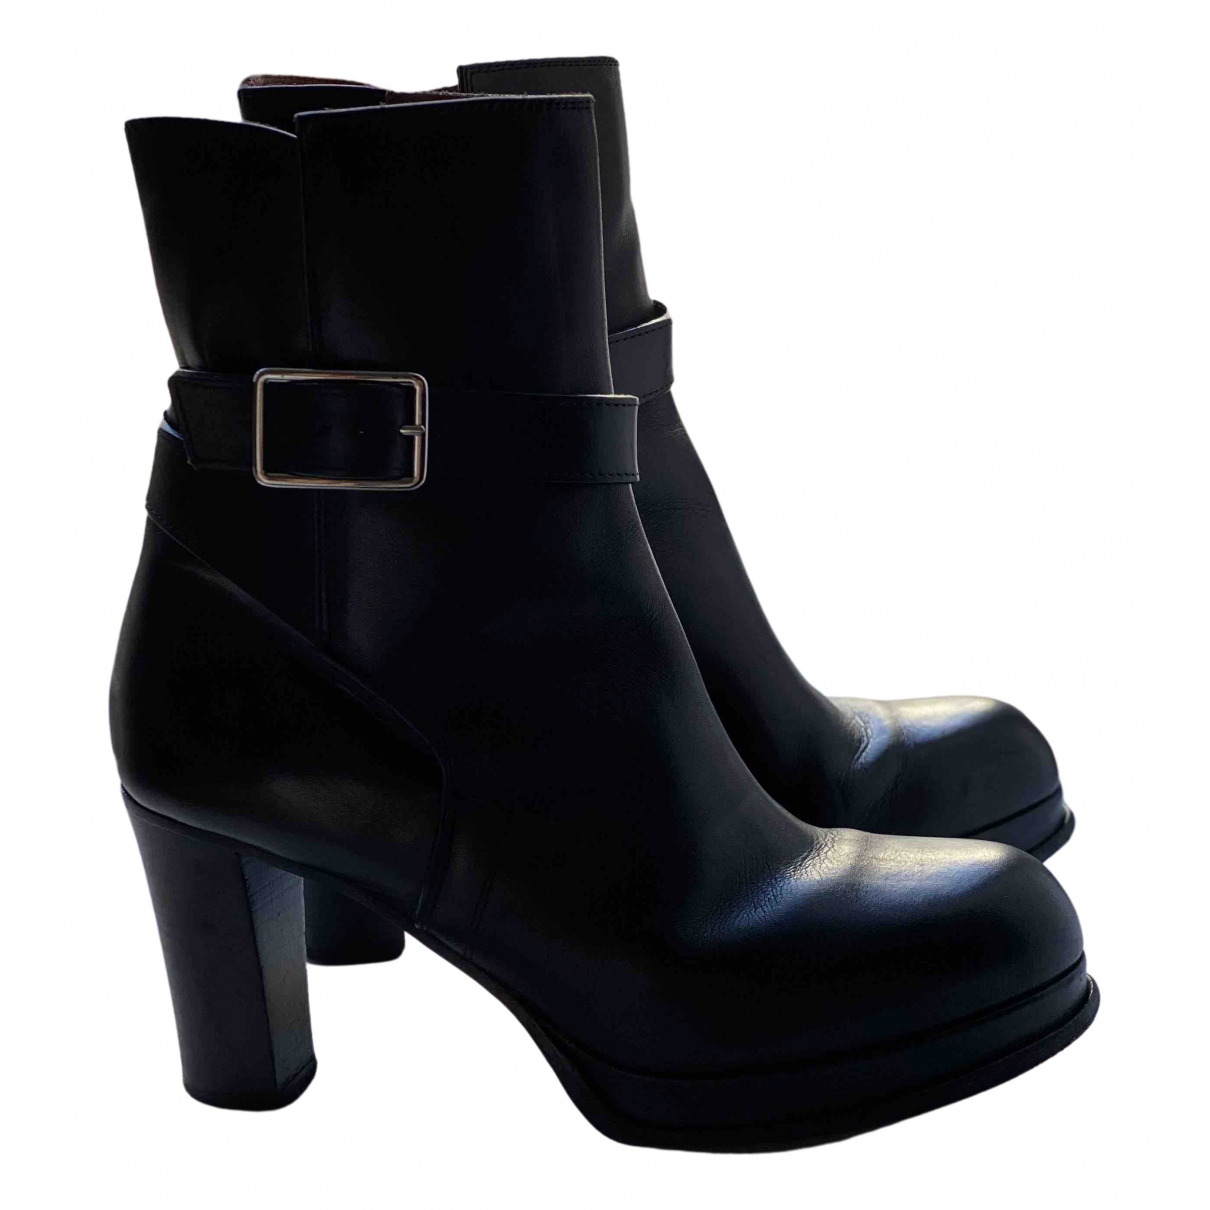 Acne Studios N Black Leather Ankle boots for Women 36 EU